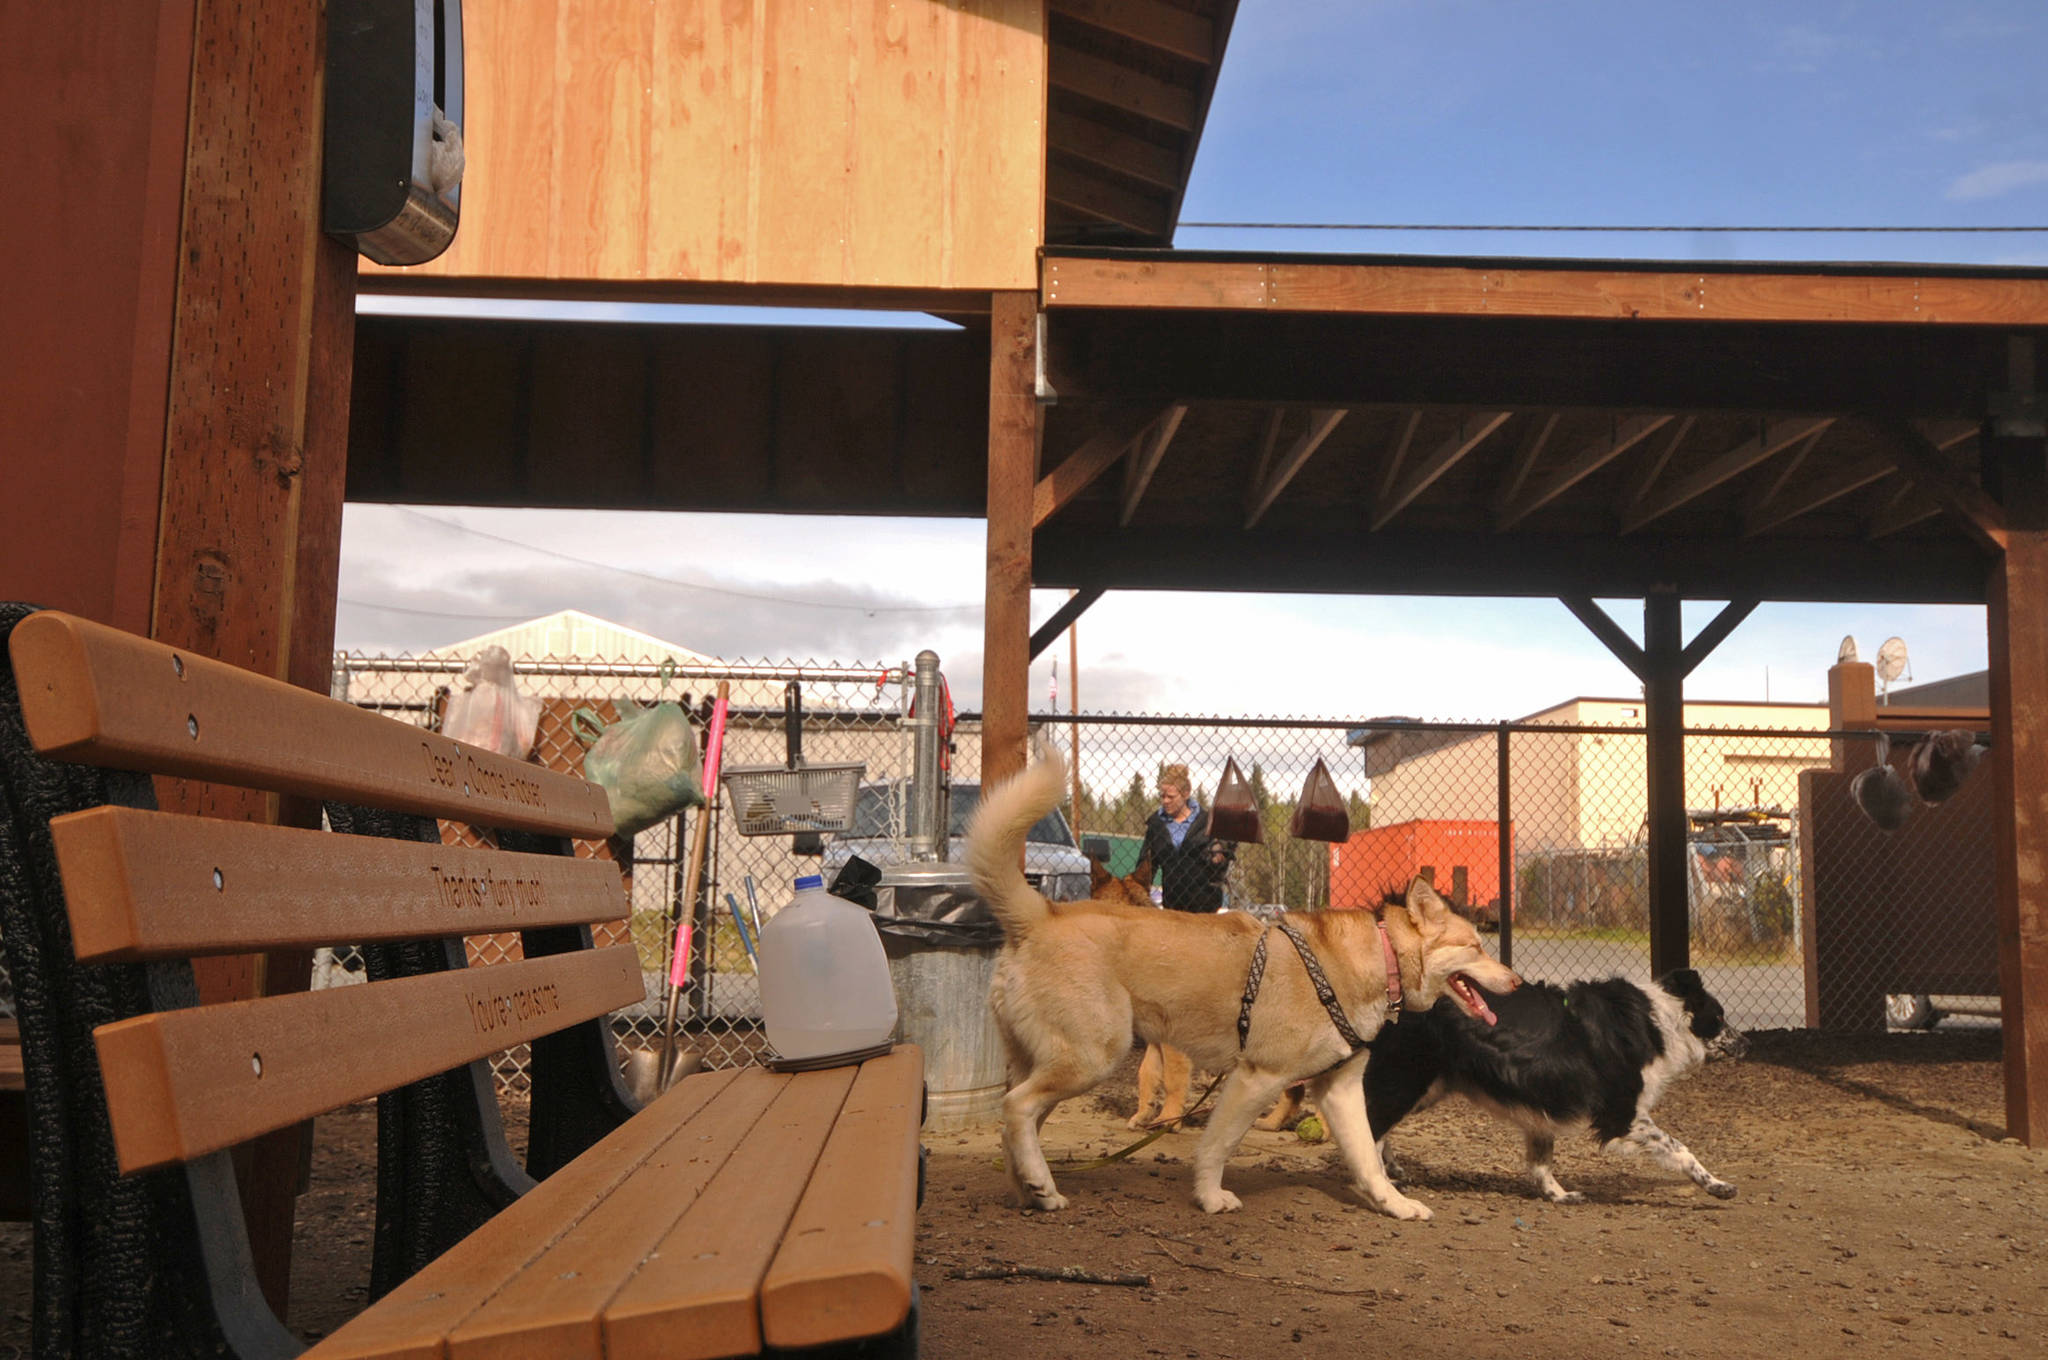 Dogs trot around the 3 Friends Dog Park on Monday, May 21, 2018 in Soldotna, Alaska. (Photo by Elizabeth Earl/Peninsula Clarion)